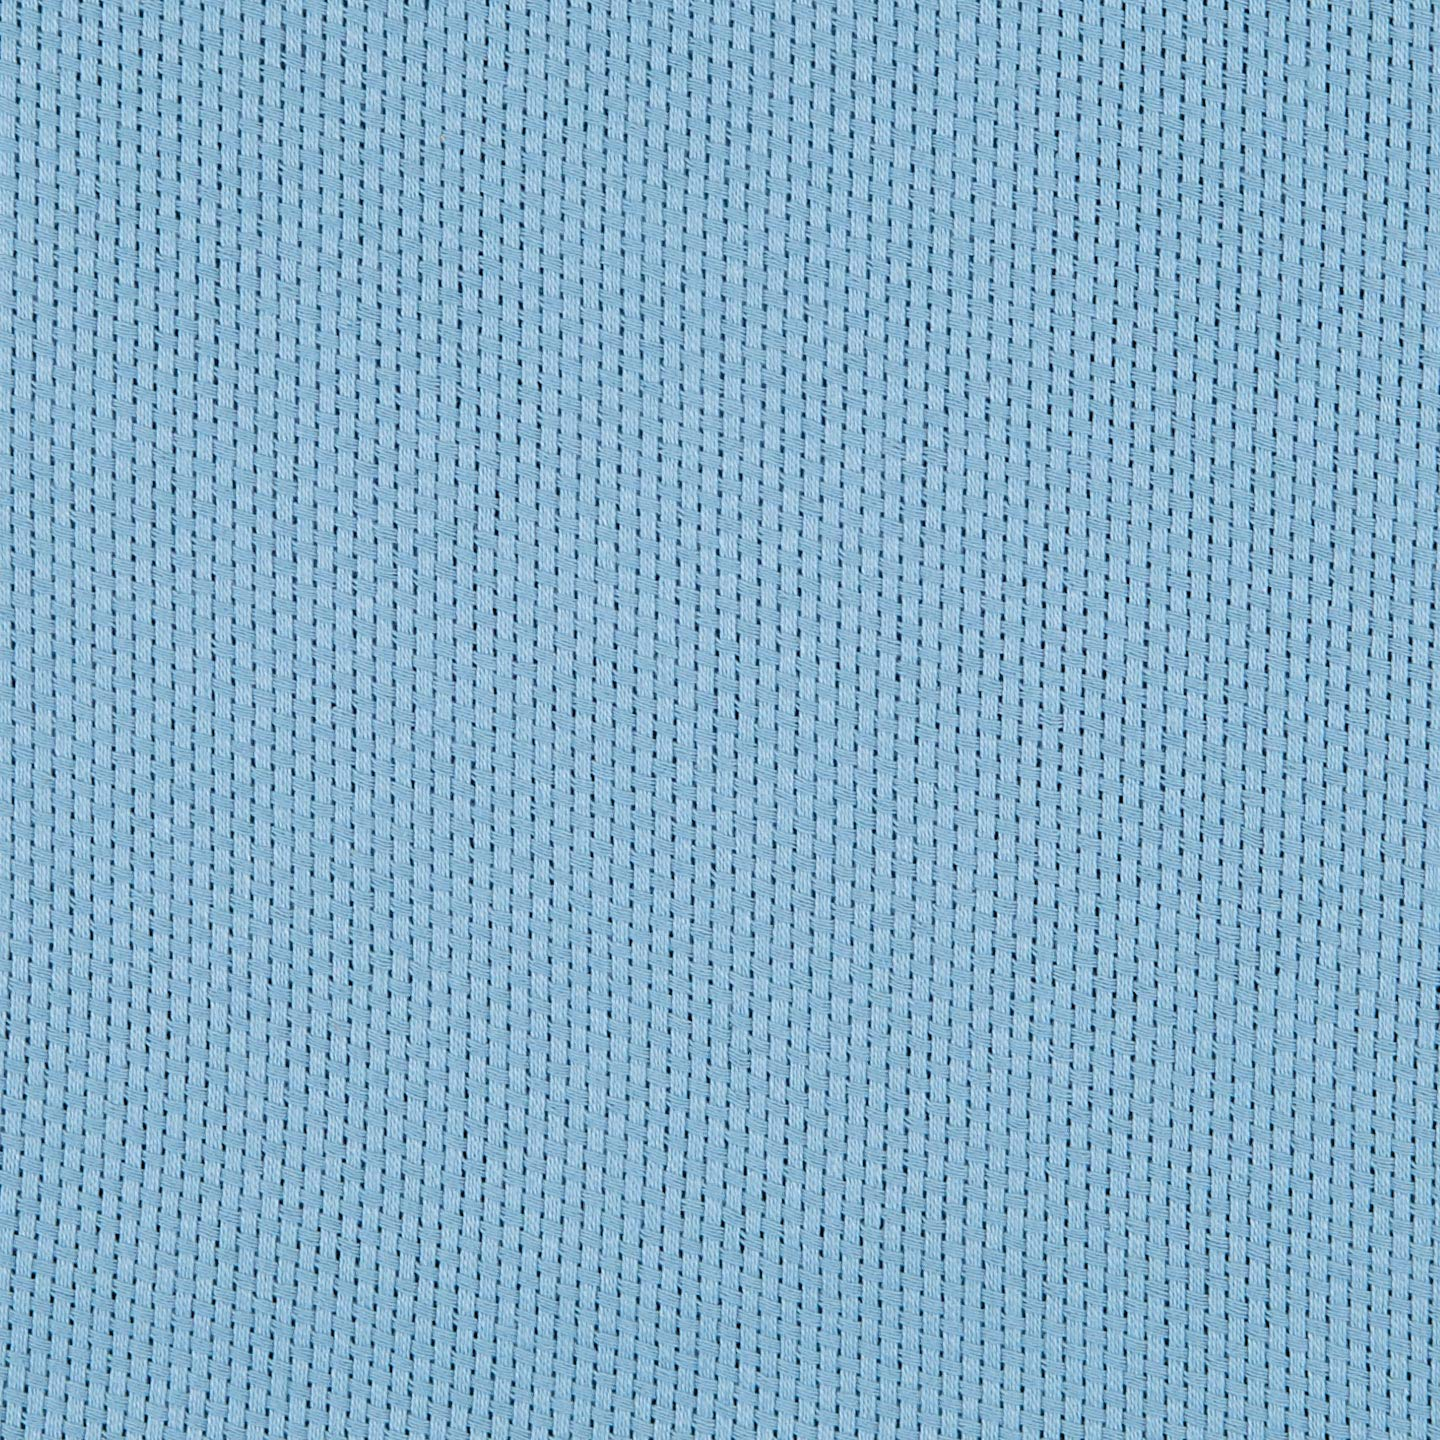 60'' Monk's Cloth Blueberry (Bolt 9 Yard) Fabric by James Thompson & Co., Inc. (Image #2)